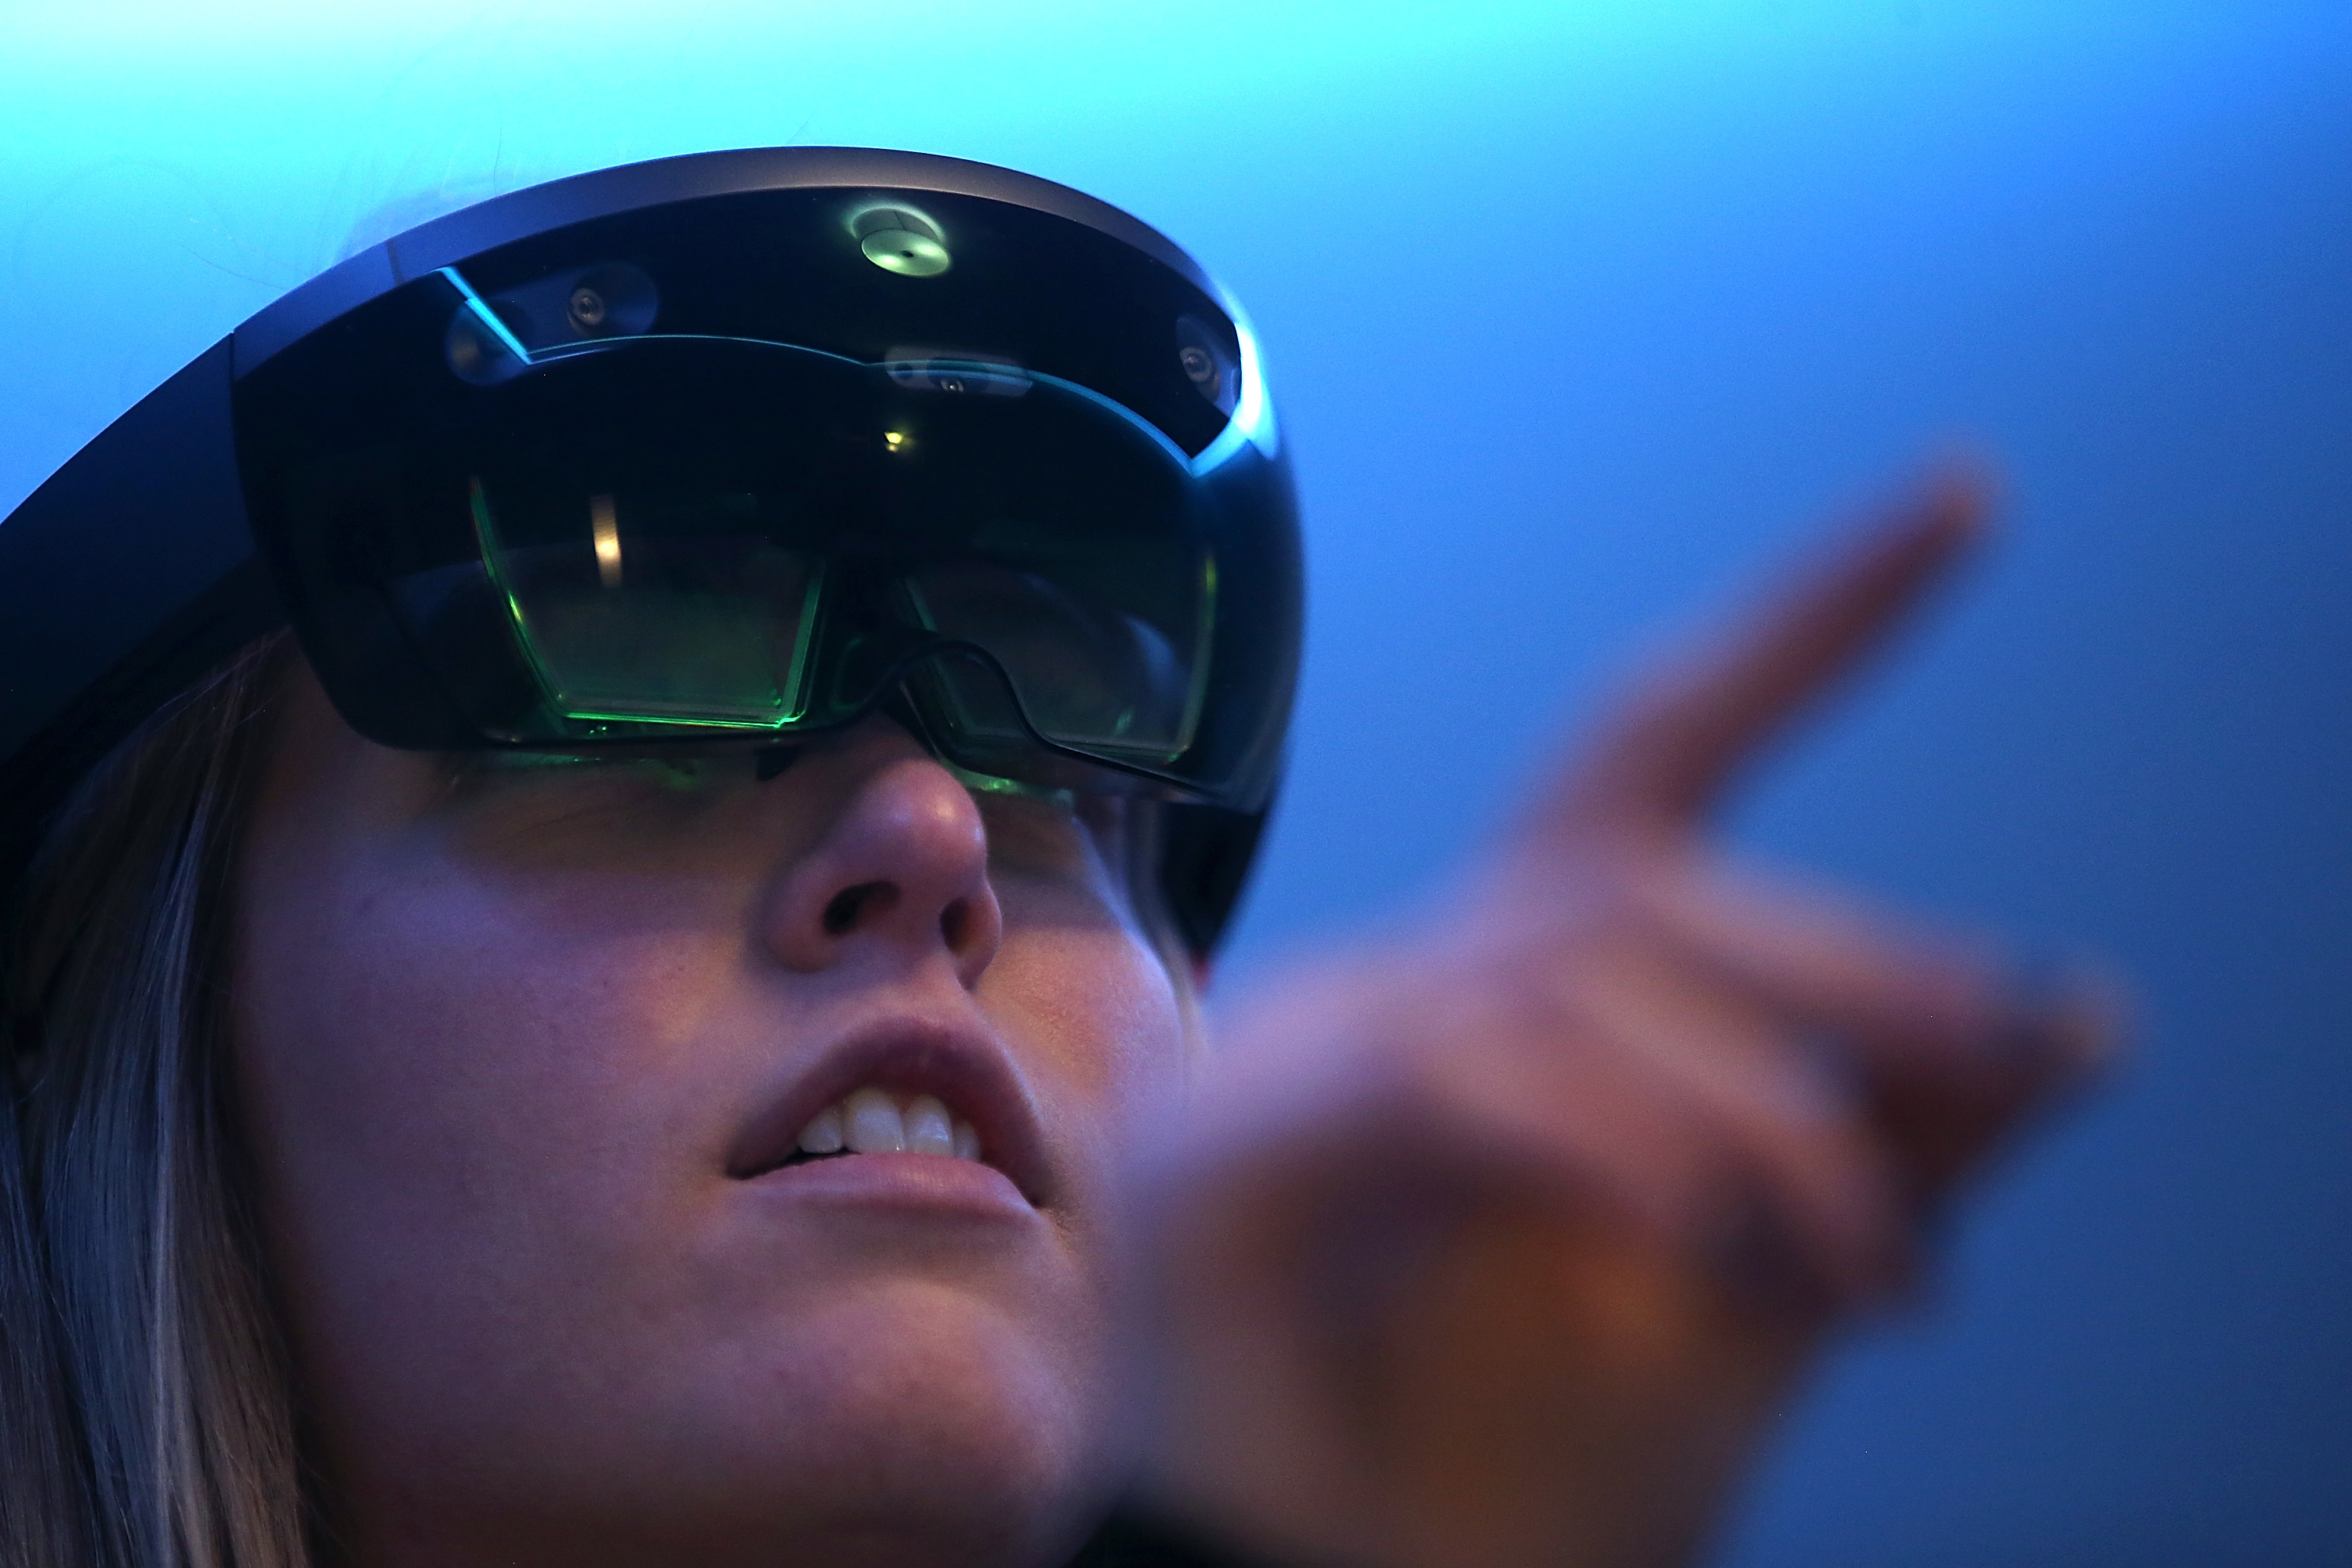 Microsoft employee Gillian Pennington demonstrates the Microsoft HoloLens augmented reality (AR) viewer during the 2016 Microsoft Build Developer Conference on March 30, 2016 in San Francisco, California.